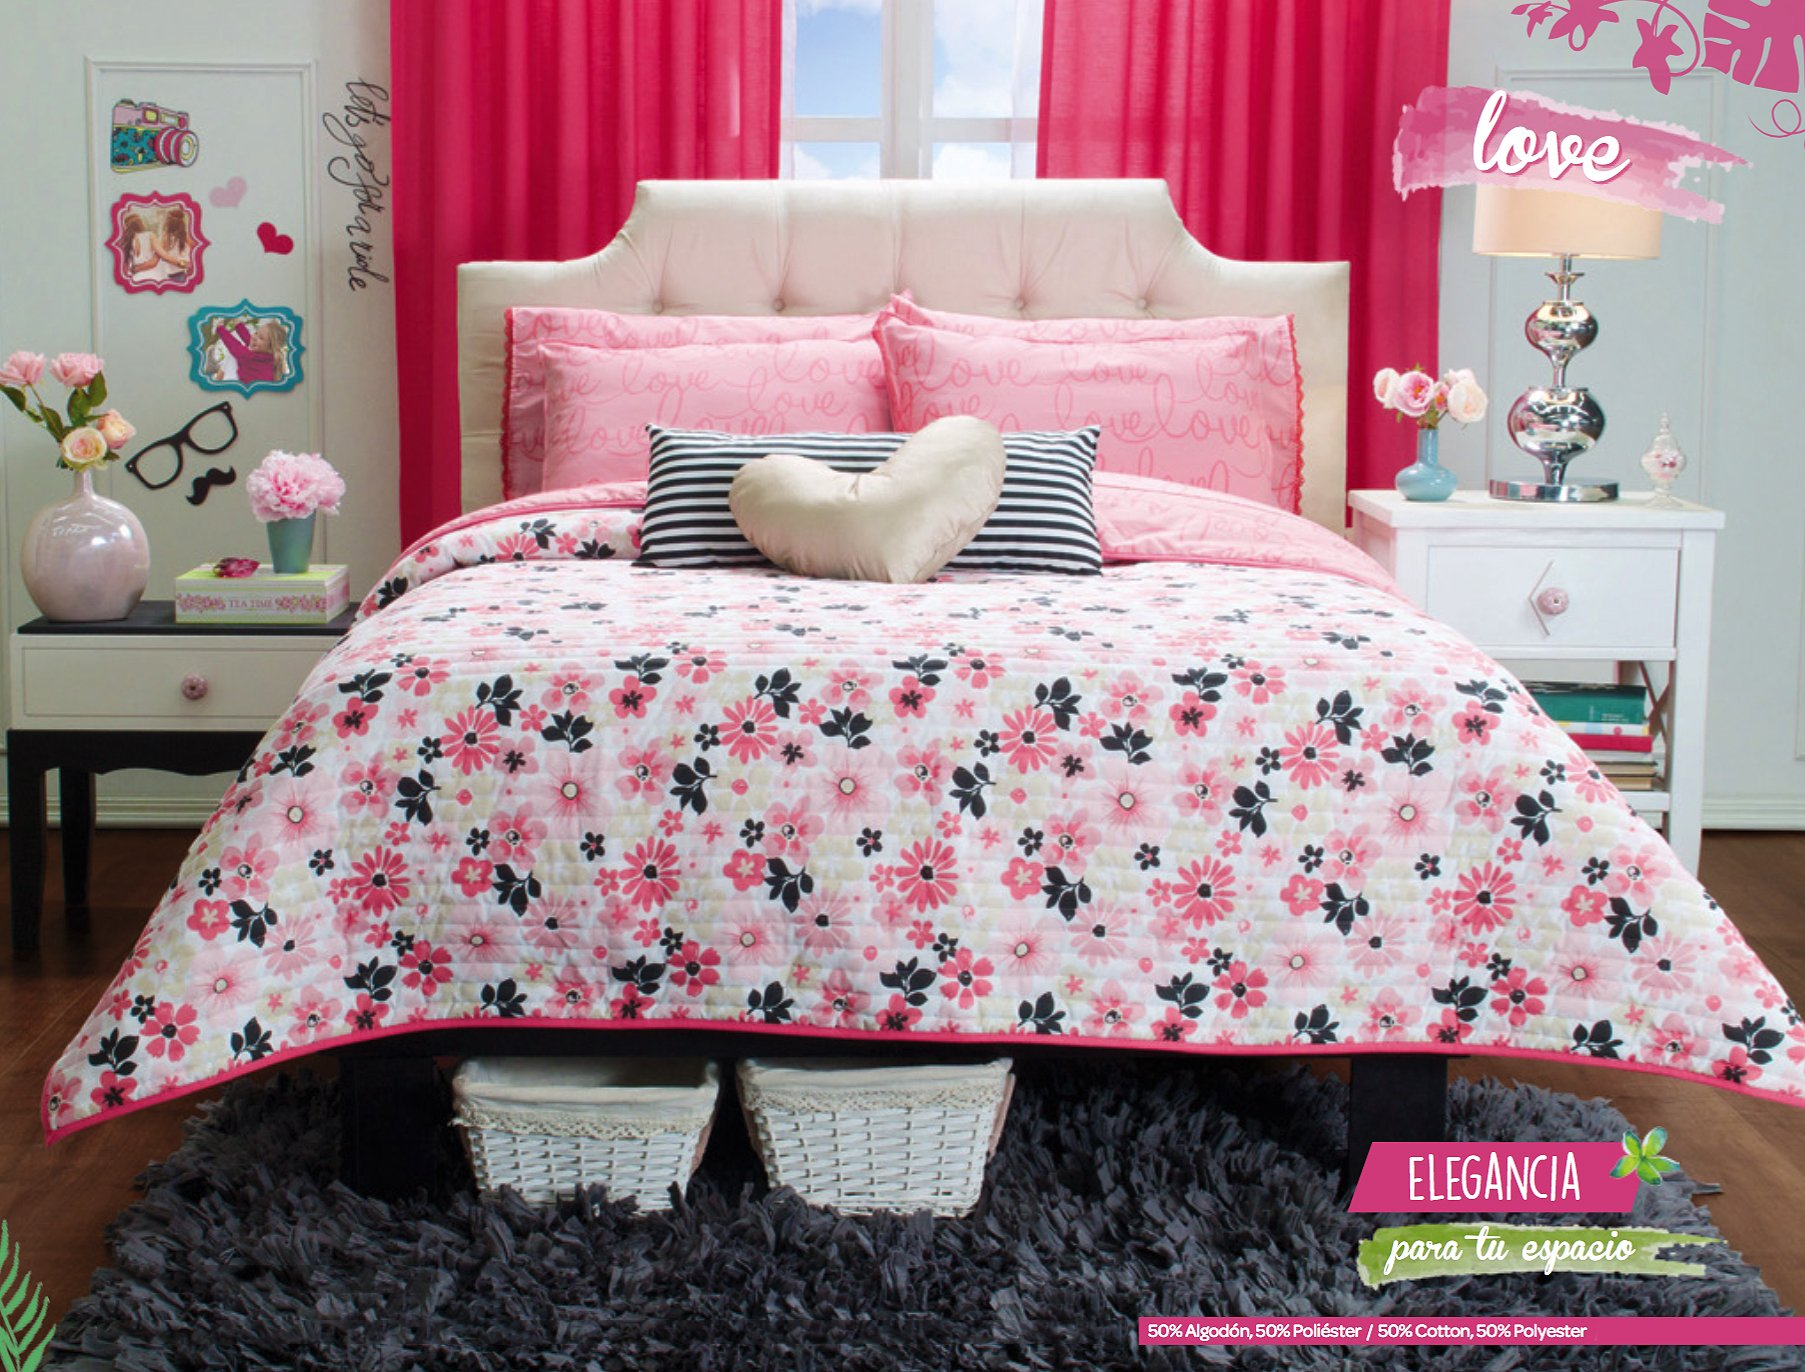 Love New Collection 3 piece Reversible Comforter Twin